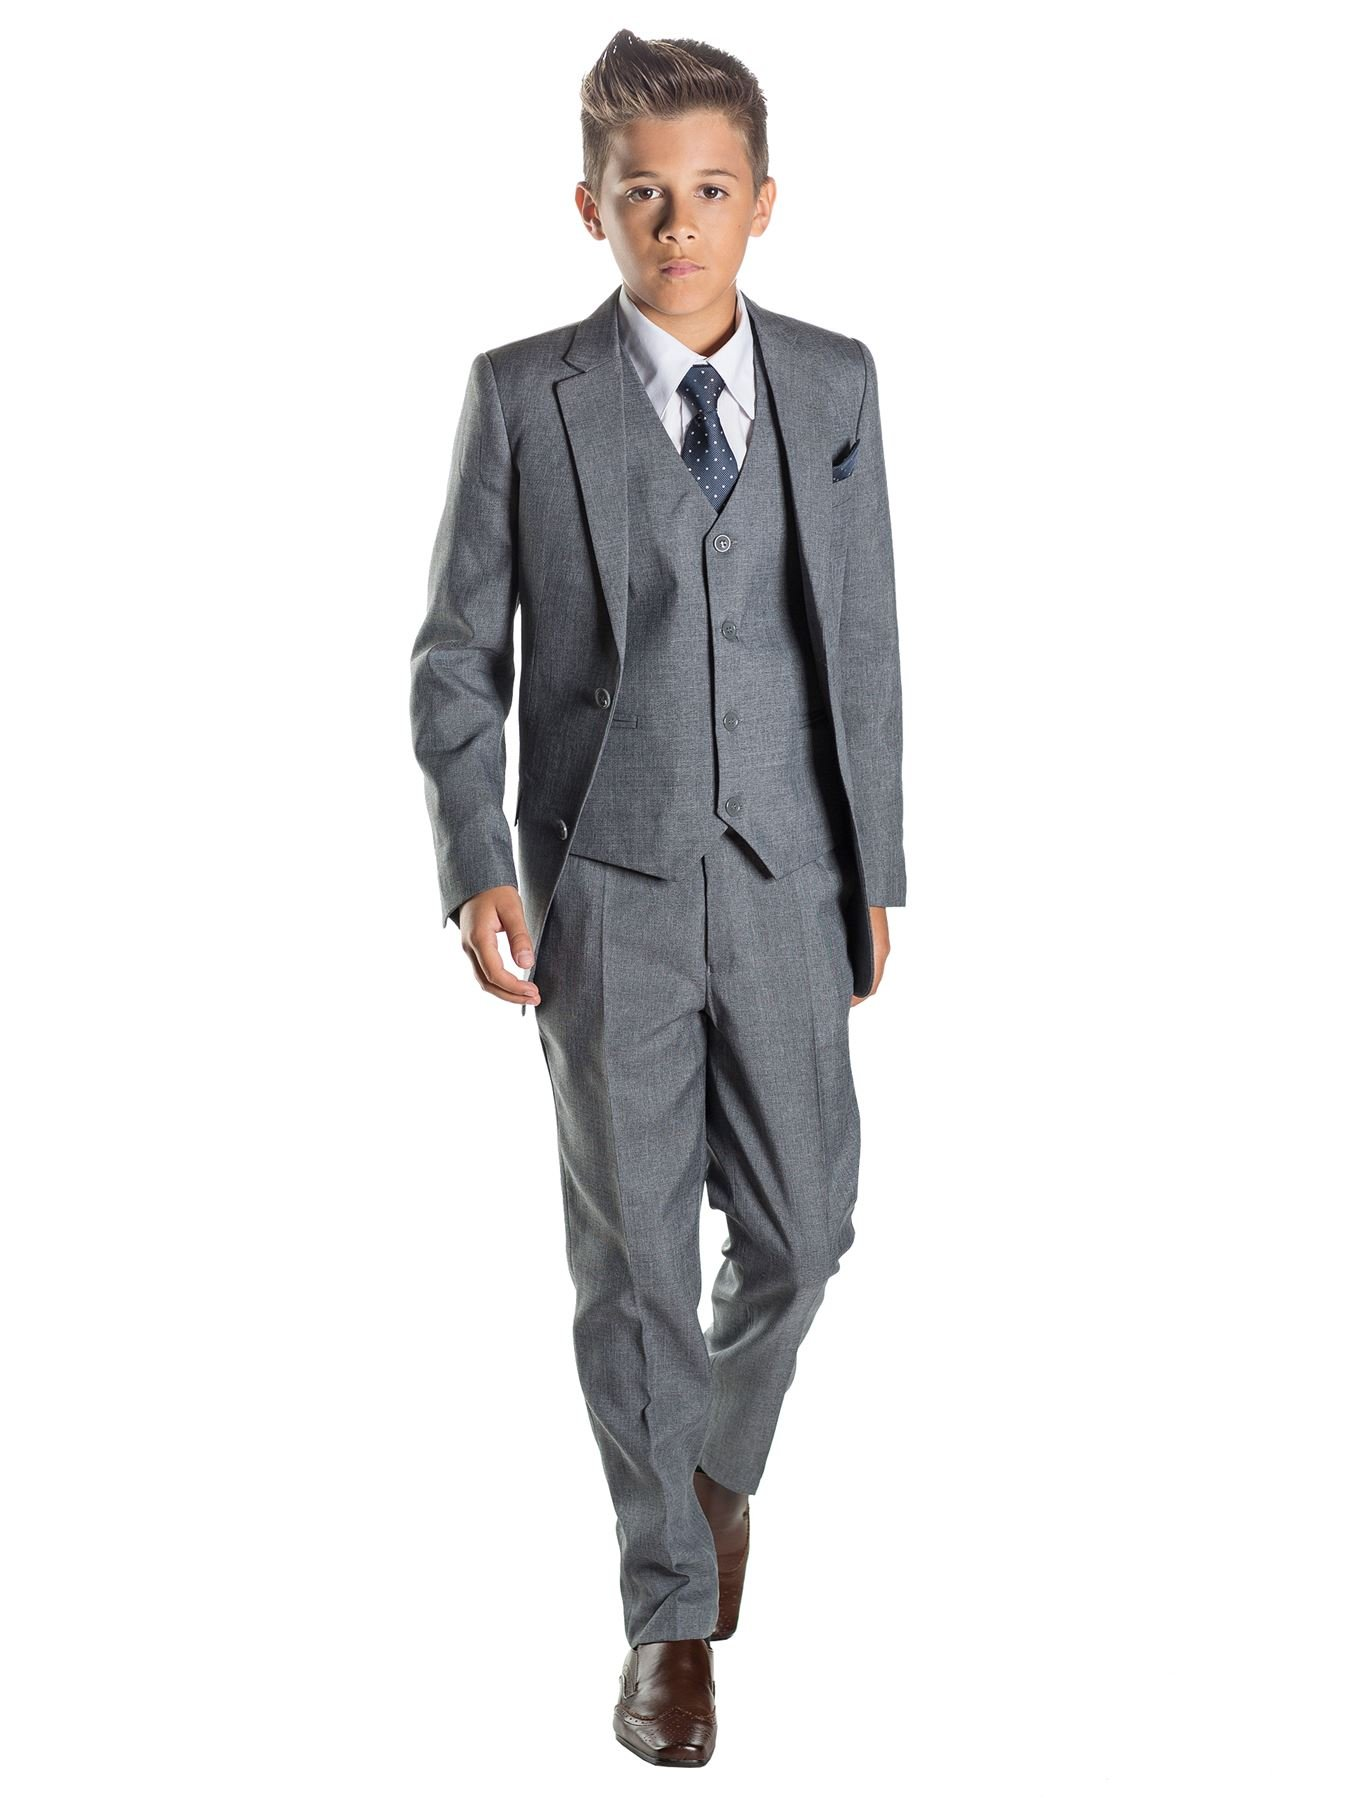 Paisley of London Boys Grey Ring Bearer Suit, 5 by Paisley of London